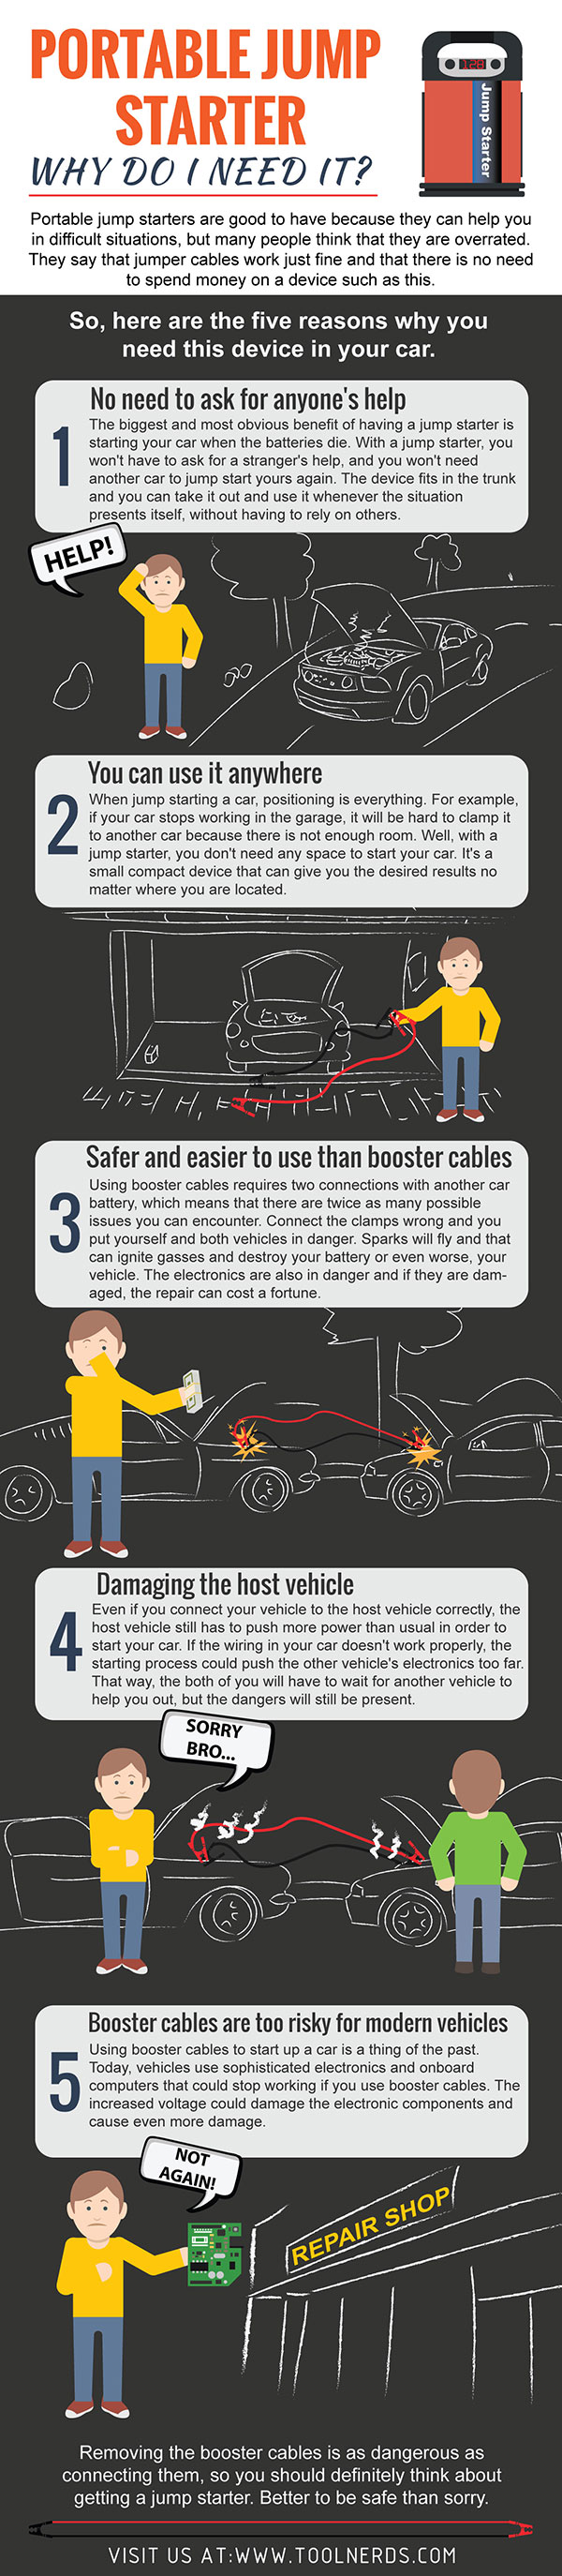 Portable Jump Starter – Why Do I Need It?